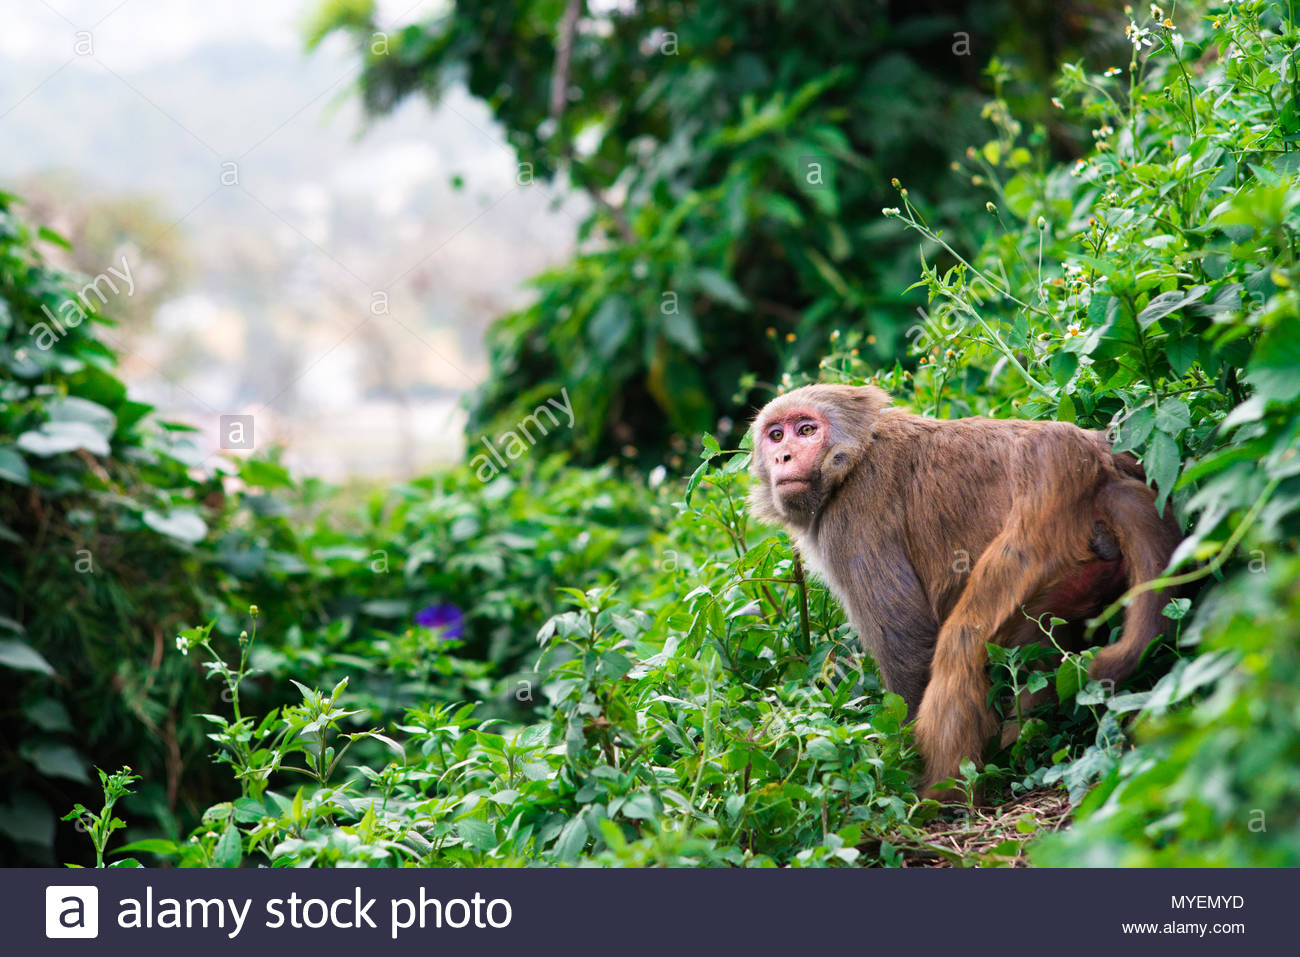 A macaque monkey amid lush greenery. - Stock Image